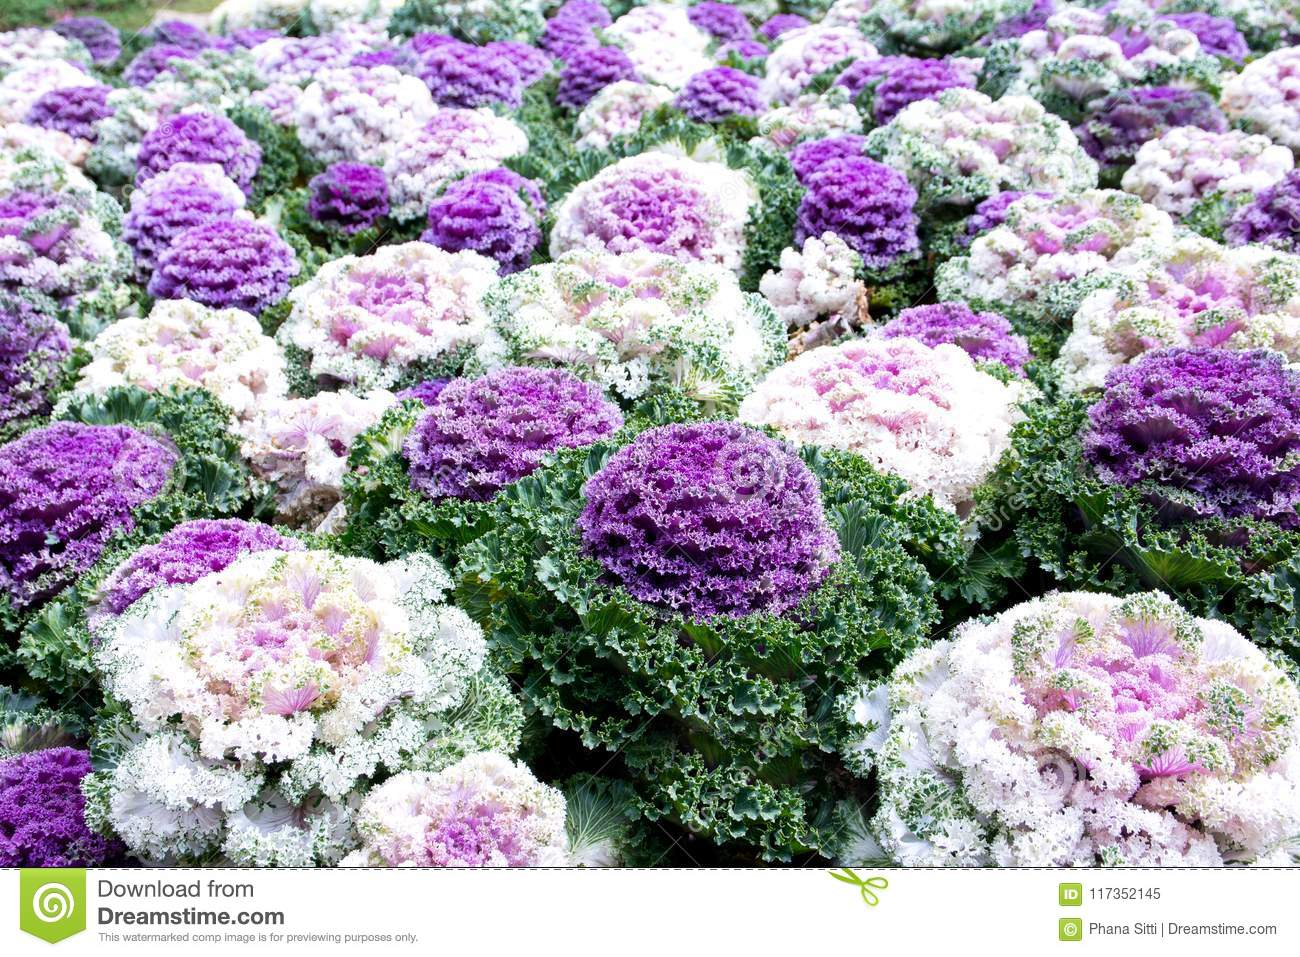 Decorative Cabbage Or Kale Decorative Cabbage Stock Image Image